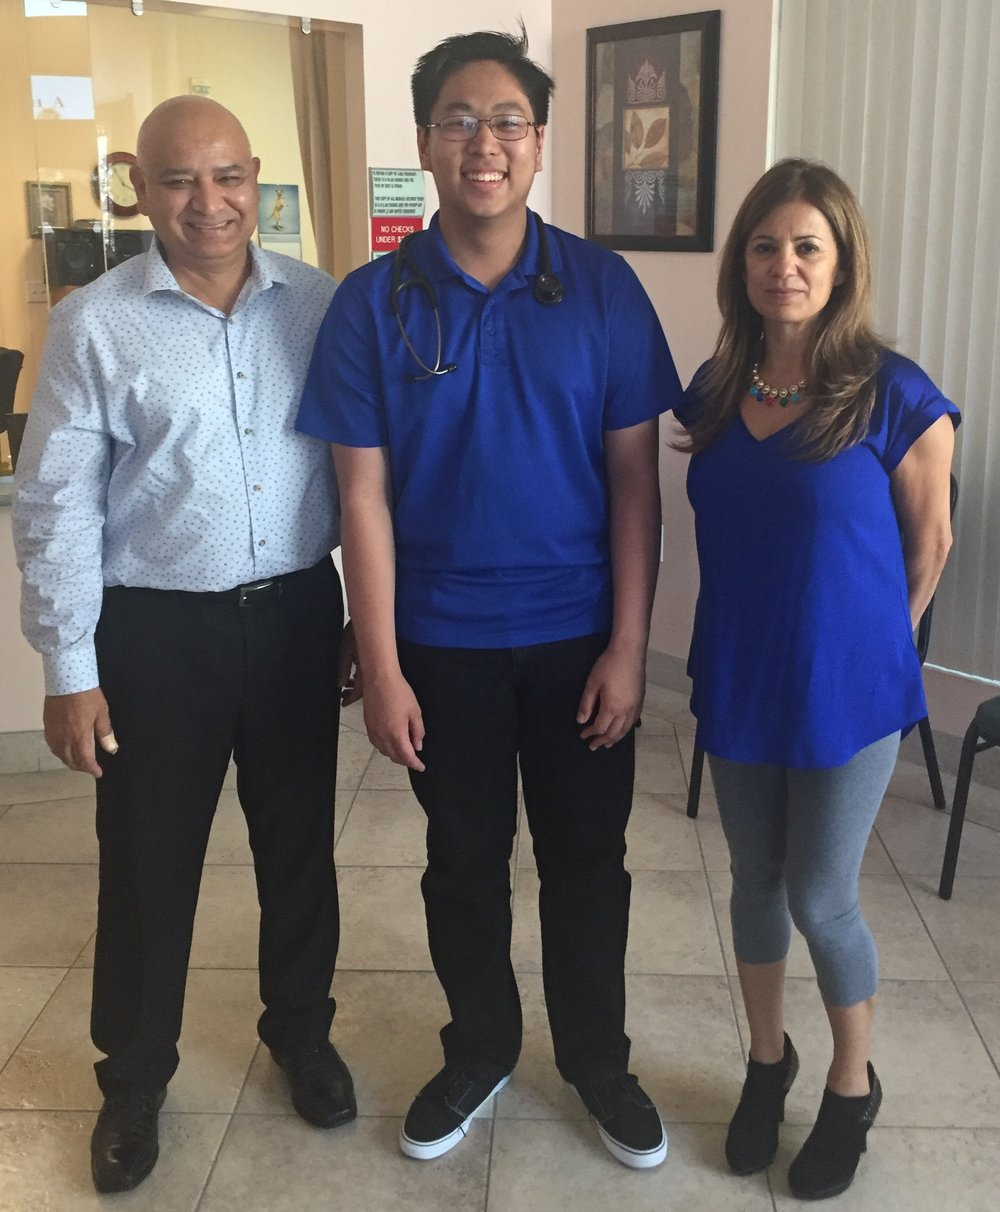 Mark is all smiles with Dr. Abid Hameed Khan and office manager Joanna Ryckman.